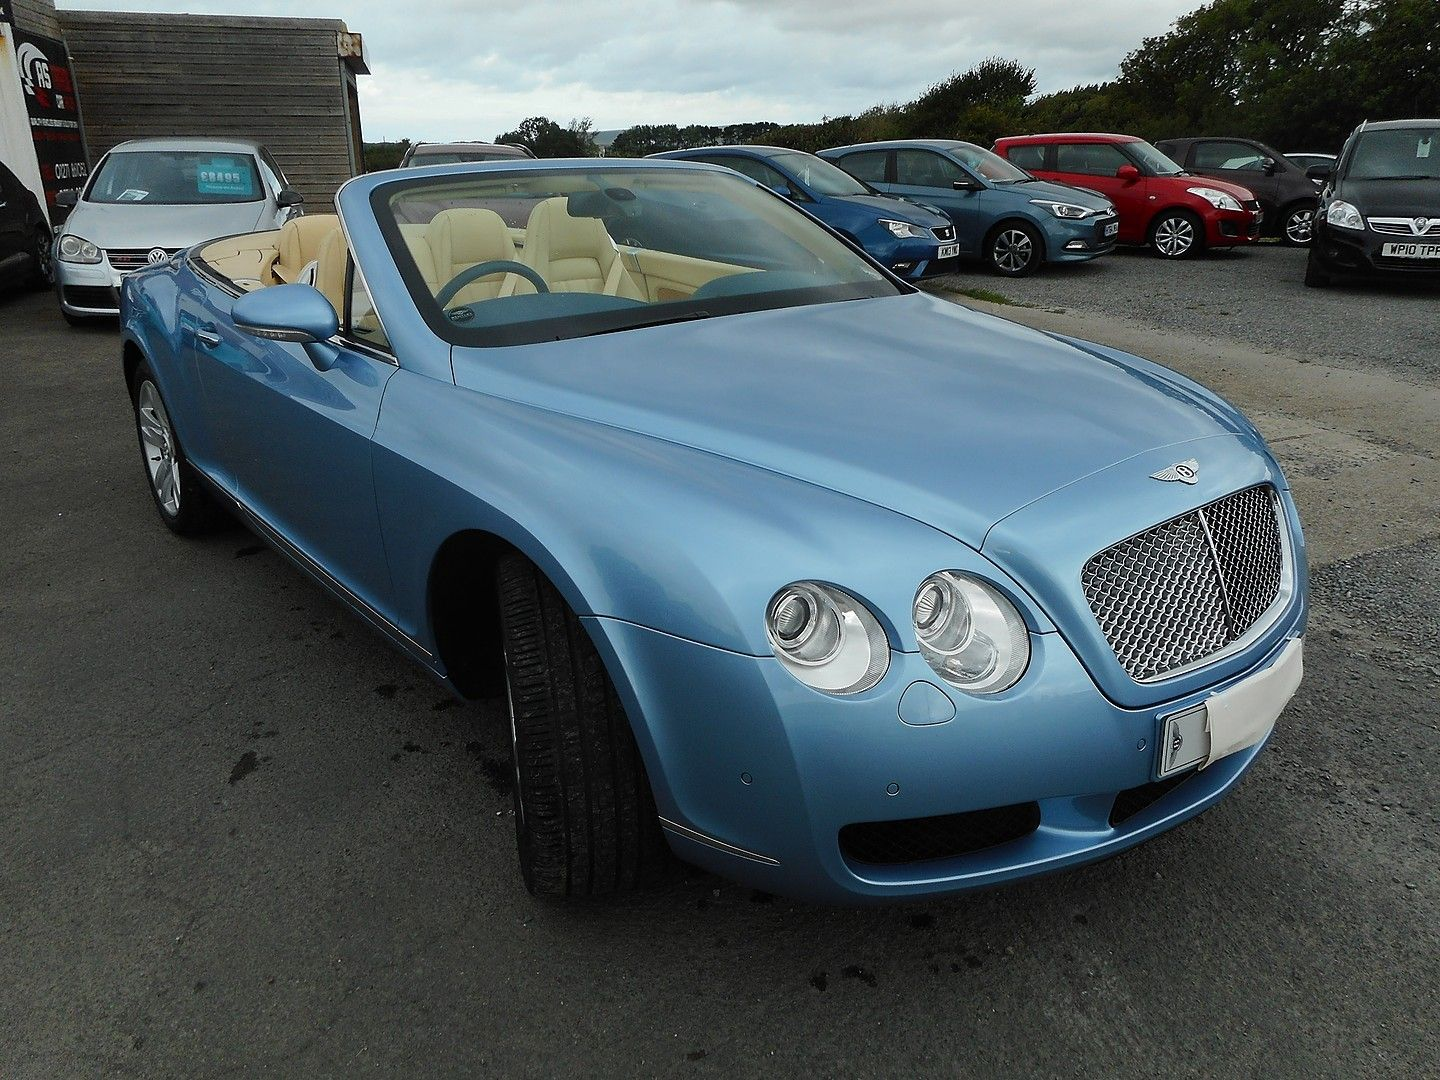 BENTLEY Continental GTC (2007) - Picture 8